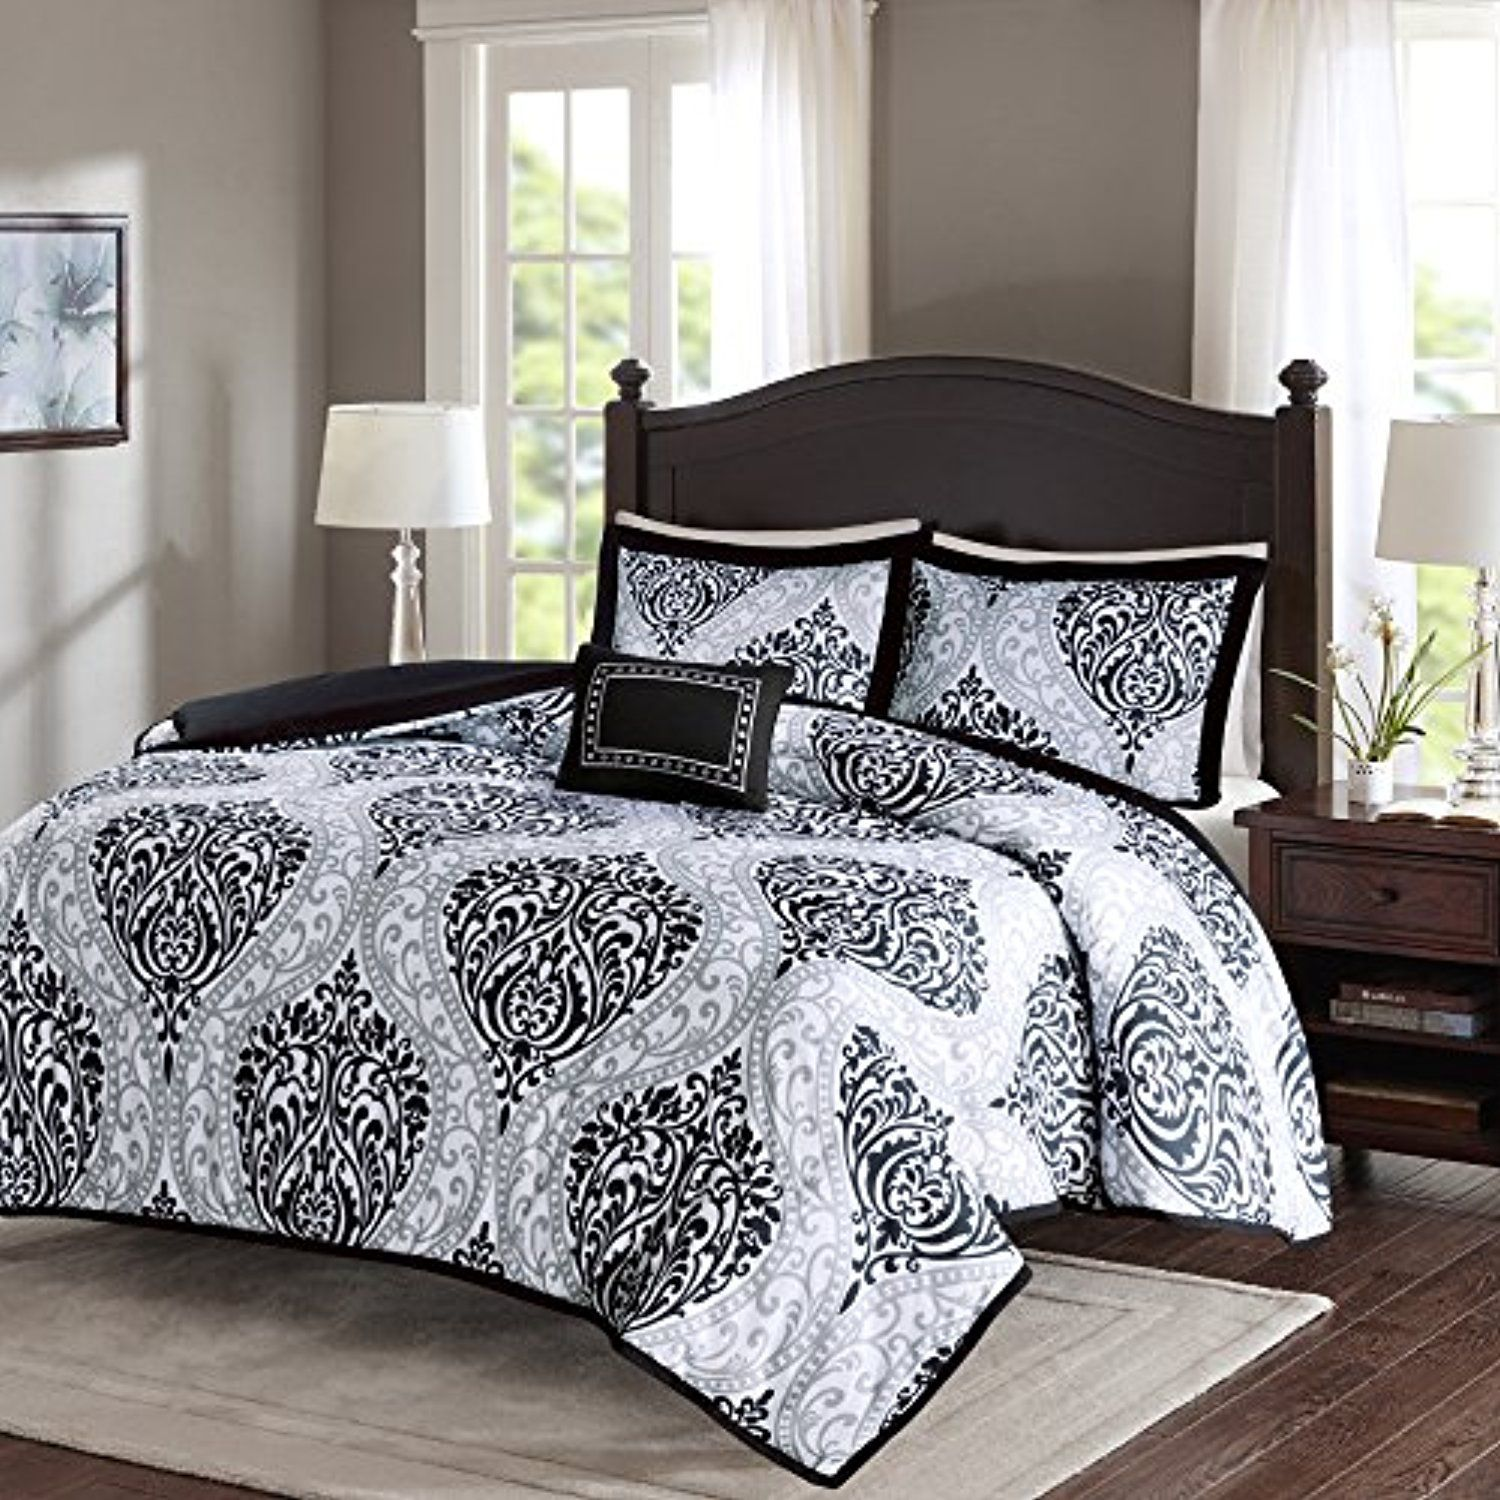 Comfort Spaces  Coco Comforter Set  4 Piece